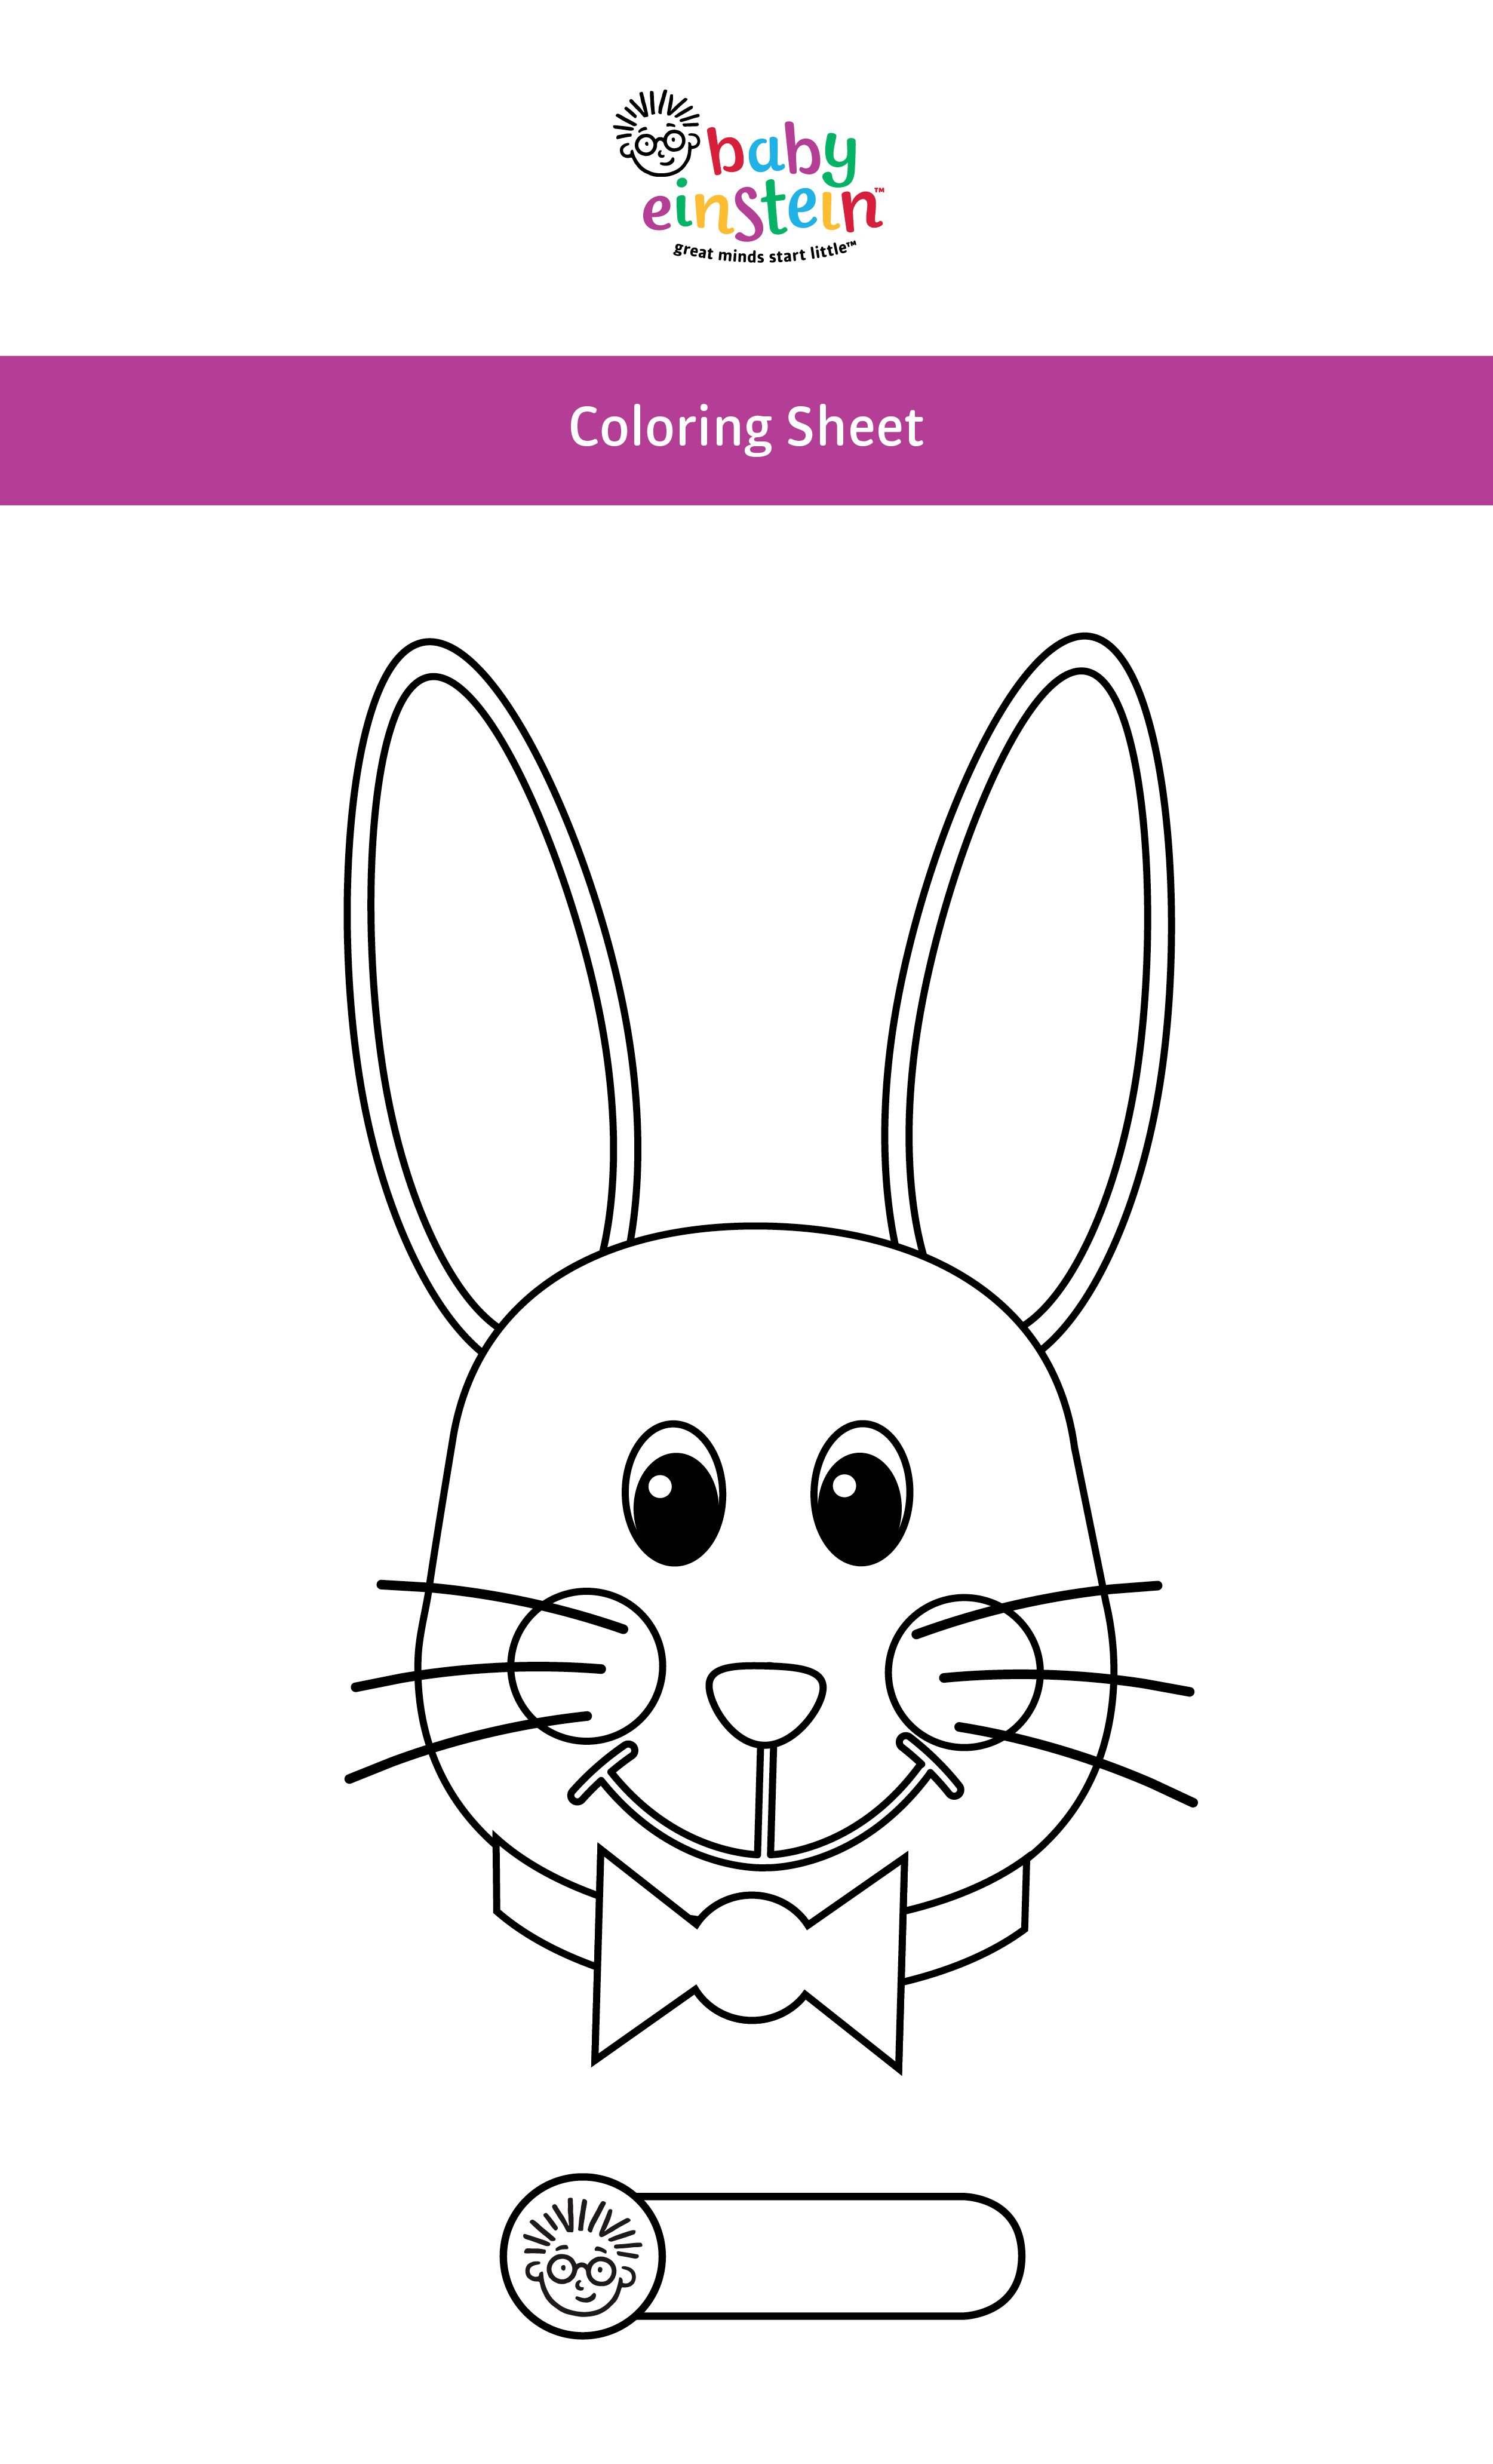 Adorable Baby Einstein Coloring Pages For Your Little One S Birthday Party Get Free Printables